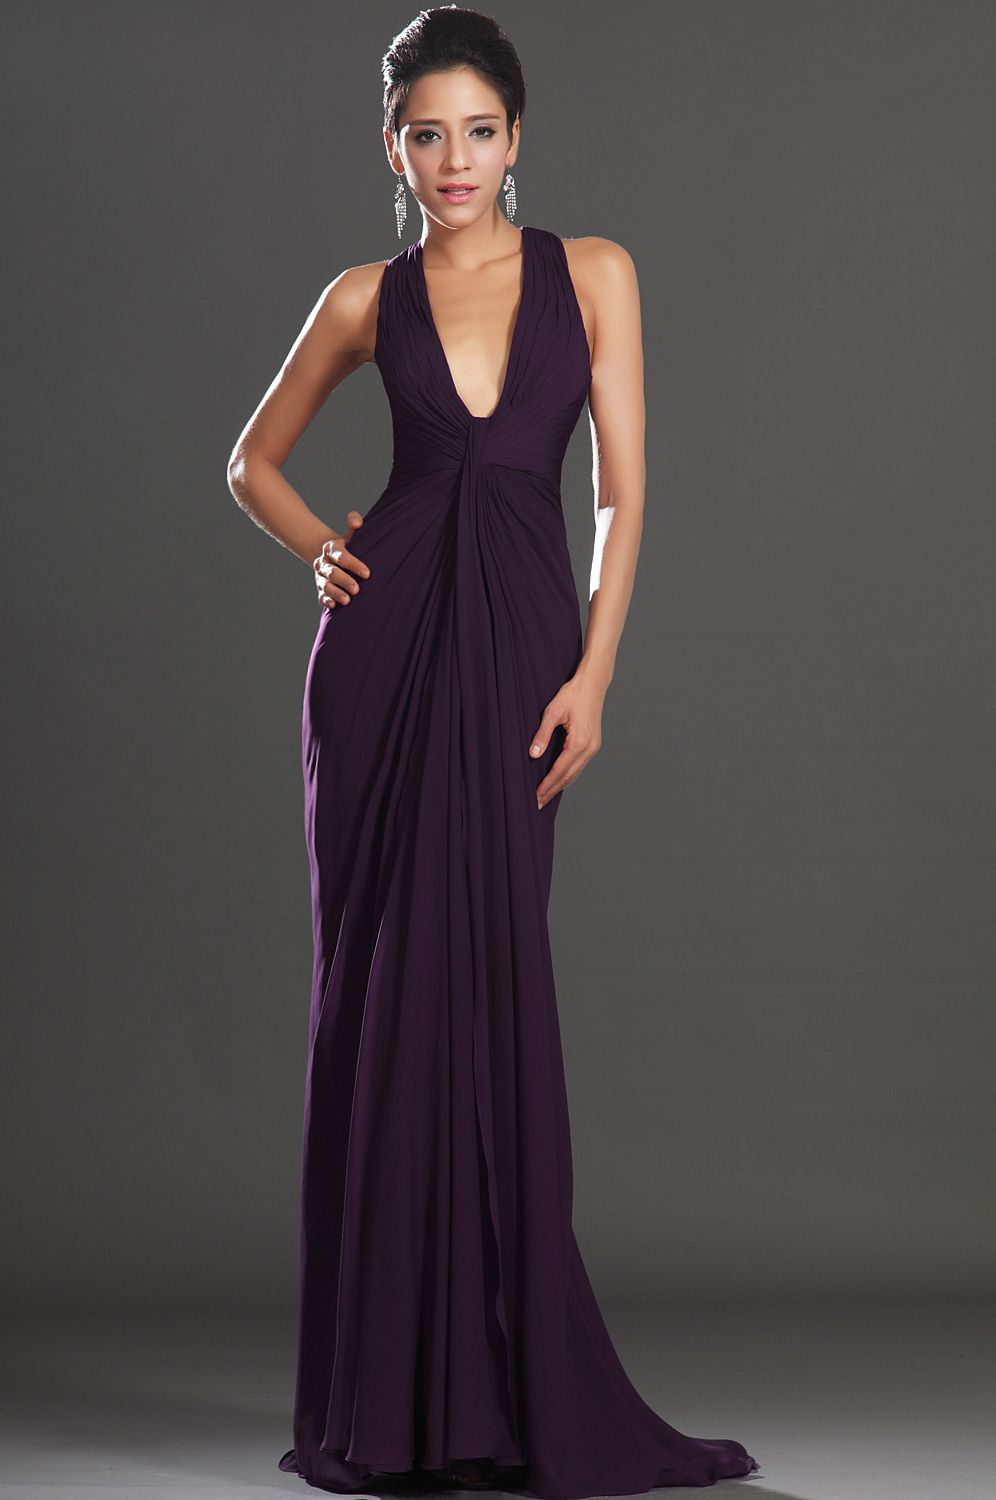 USD 39.99] eDressit New Adorable Halter Dark Purple Evening Dress ...